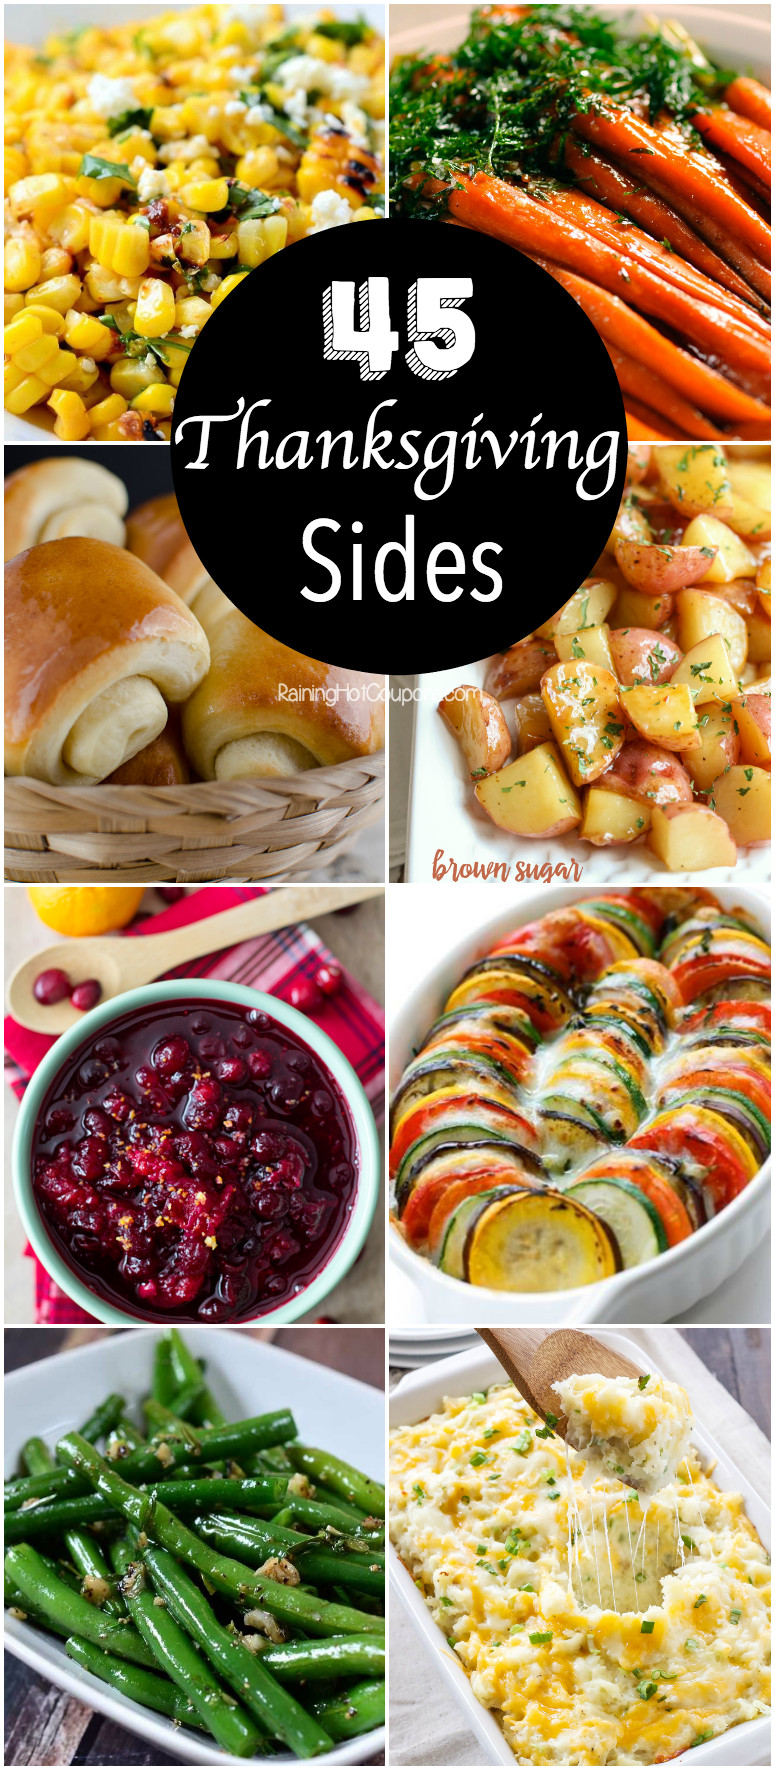 Thanksgiving Dinner Side Dishes Recipes  45 Thanksgiving Side Dishes